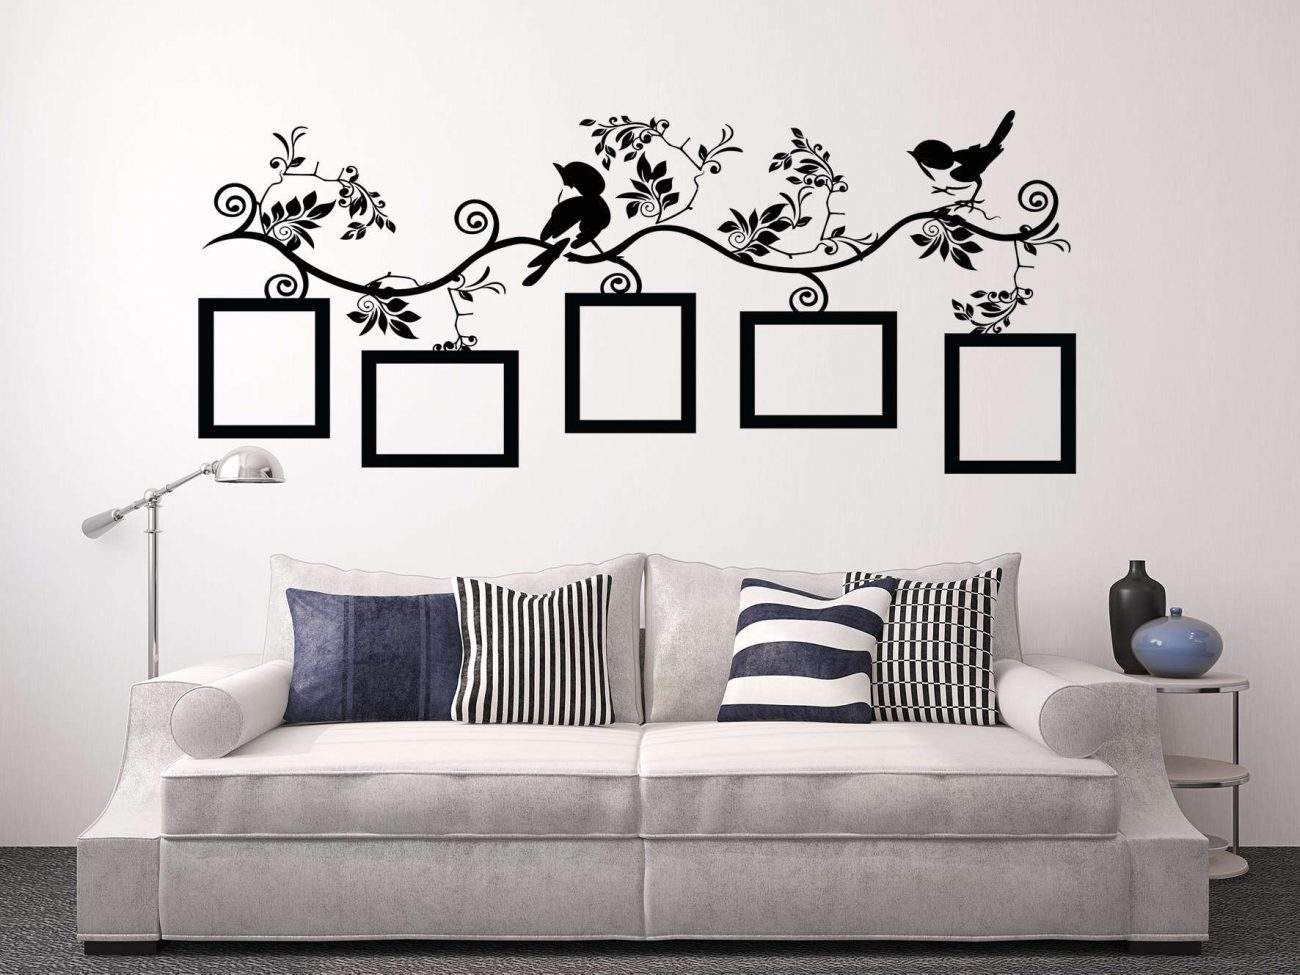 Bird photo frame branch wall decal